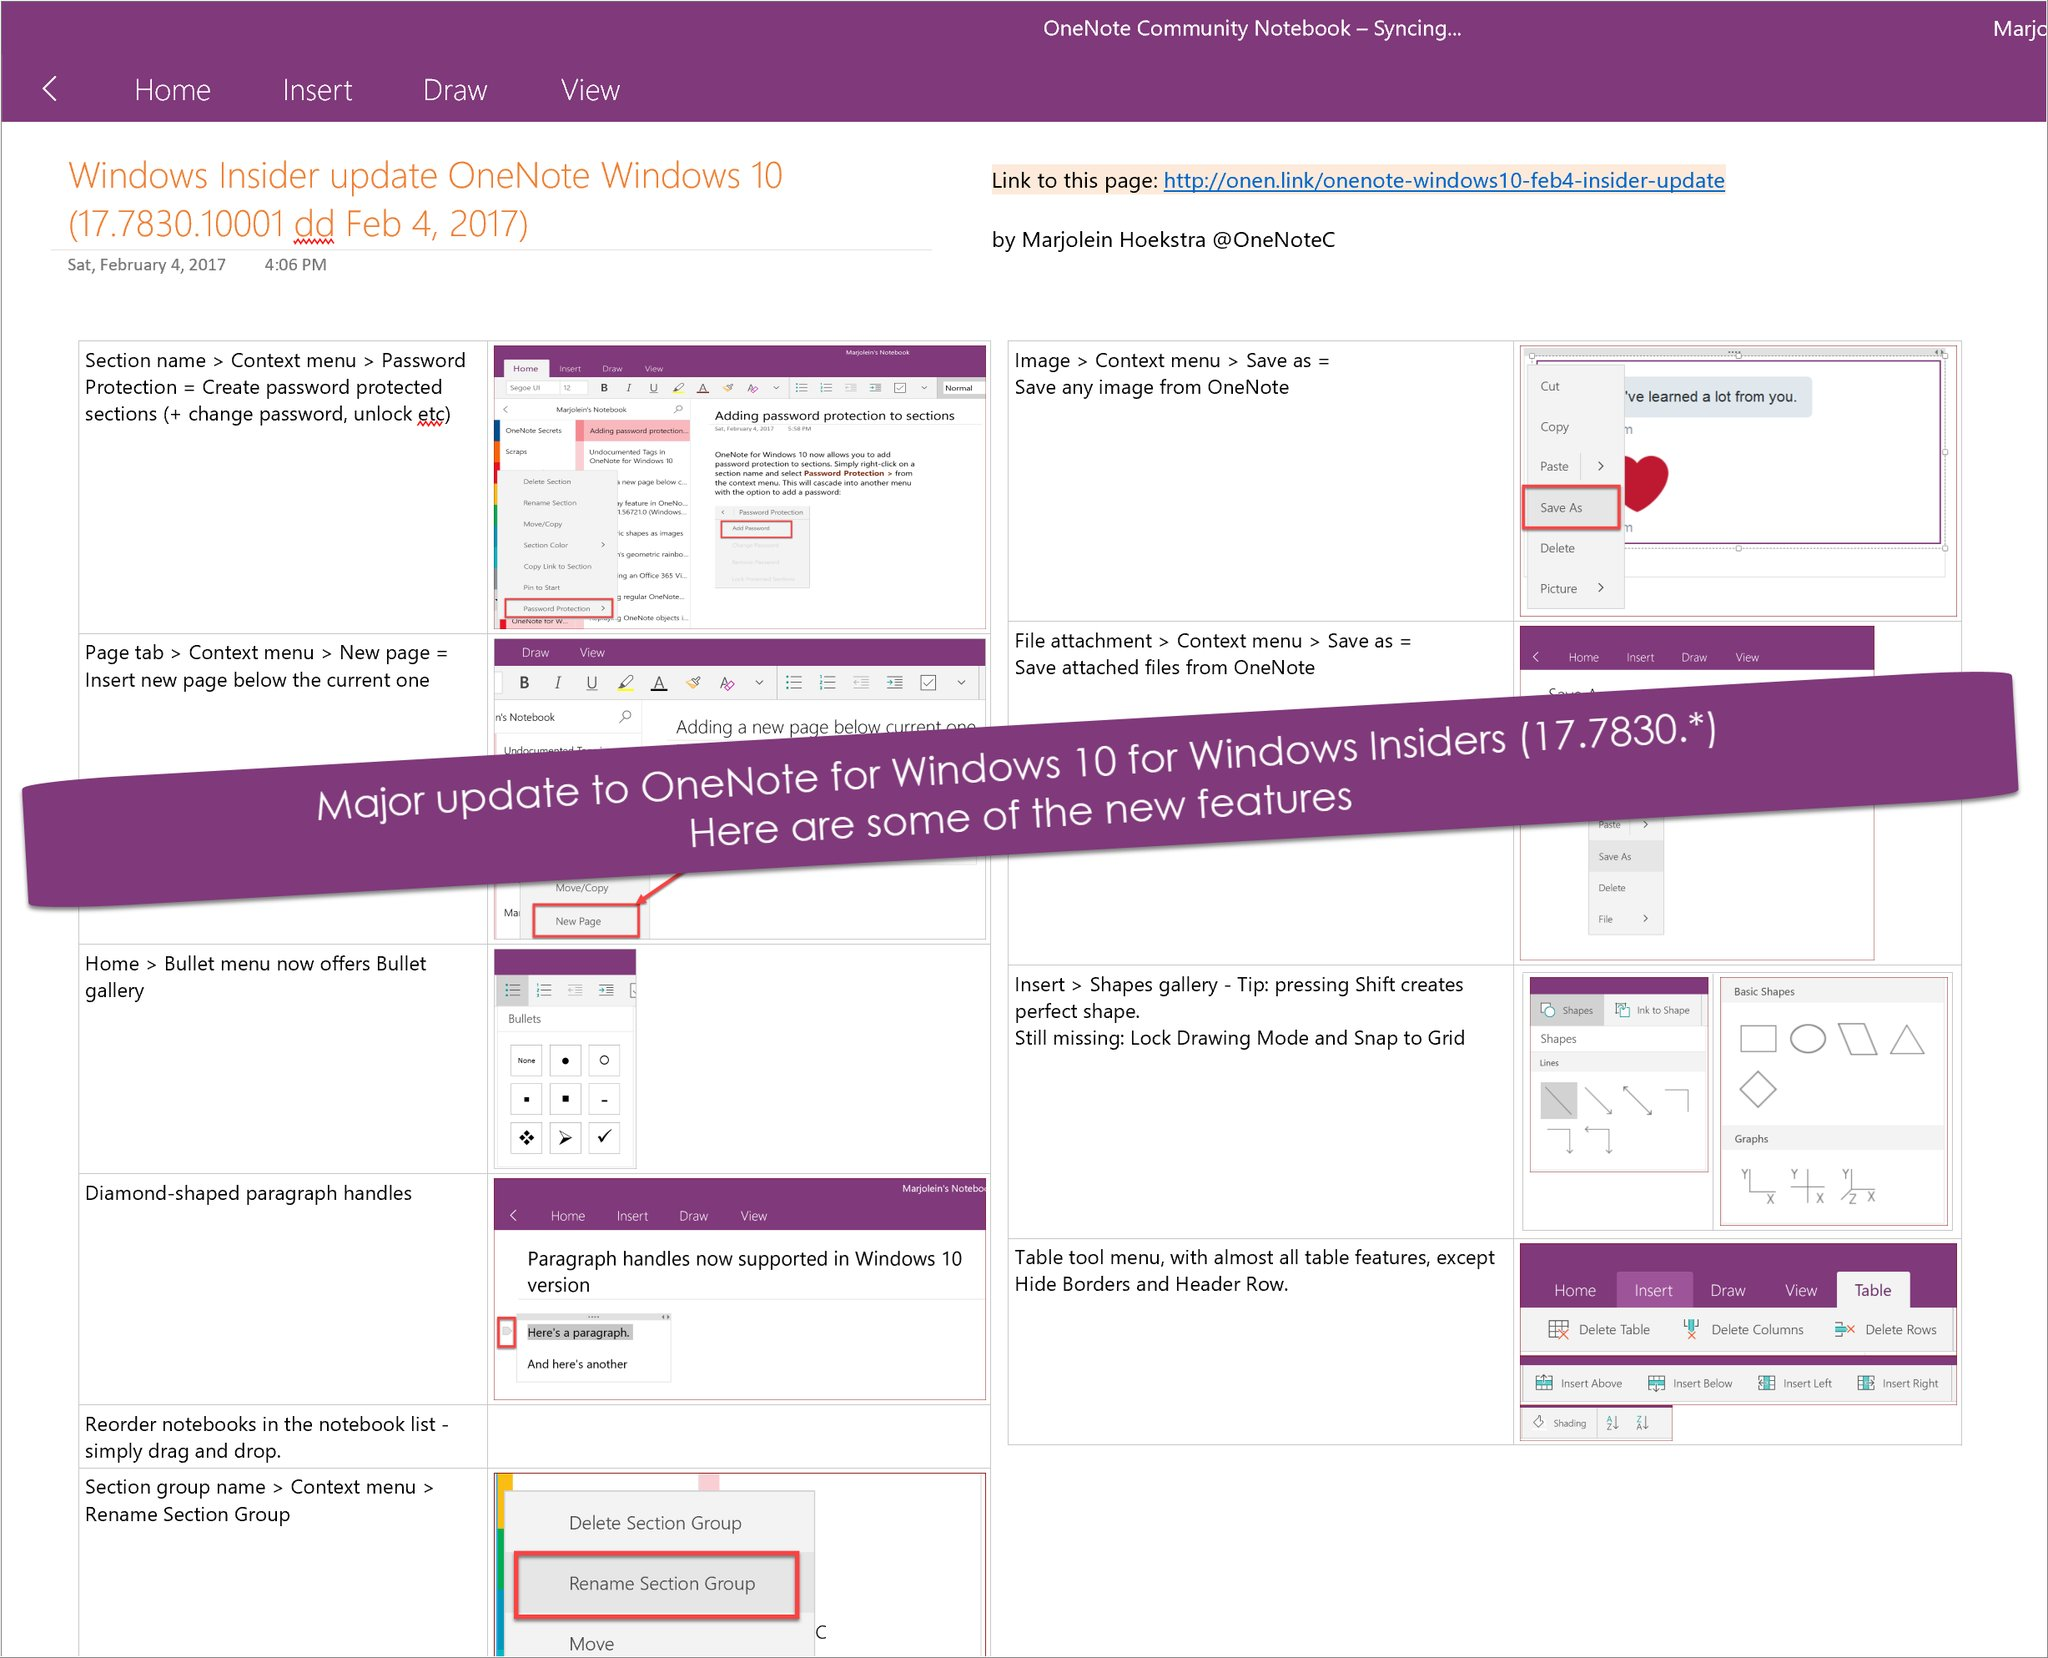 OneNote Central Tweet Shows OneNote New Features Coming Soon